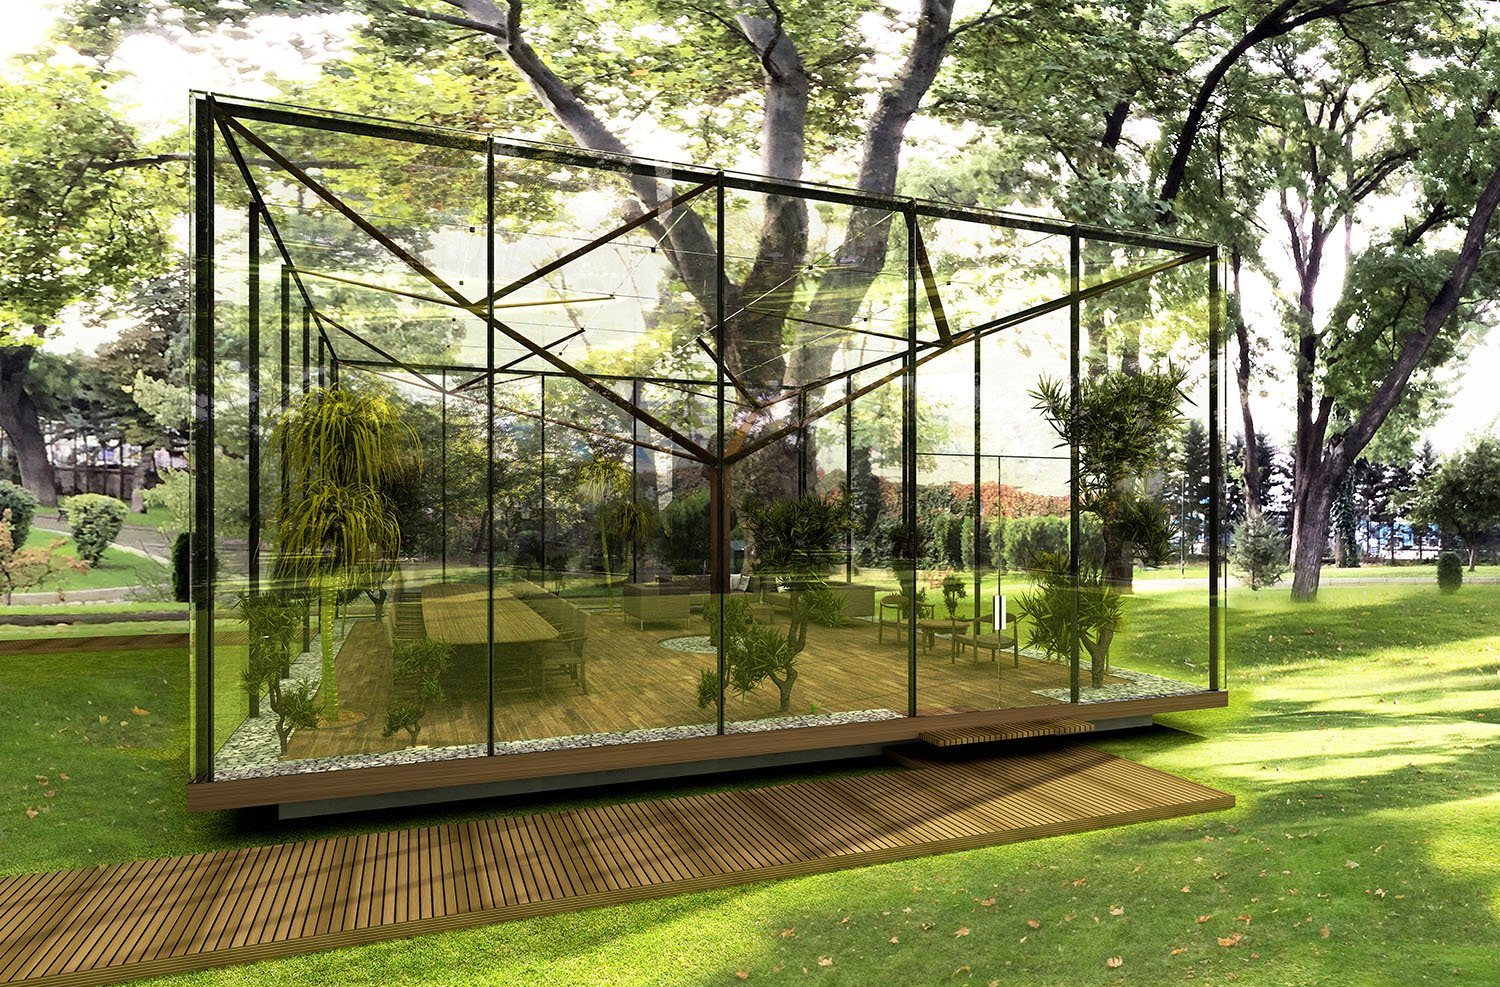 GLASS PAVILION - 06 YAZGAN DESIGN ARCHITECTURE